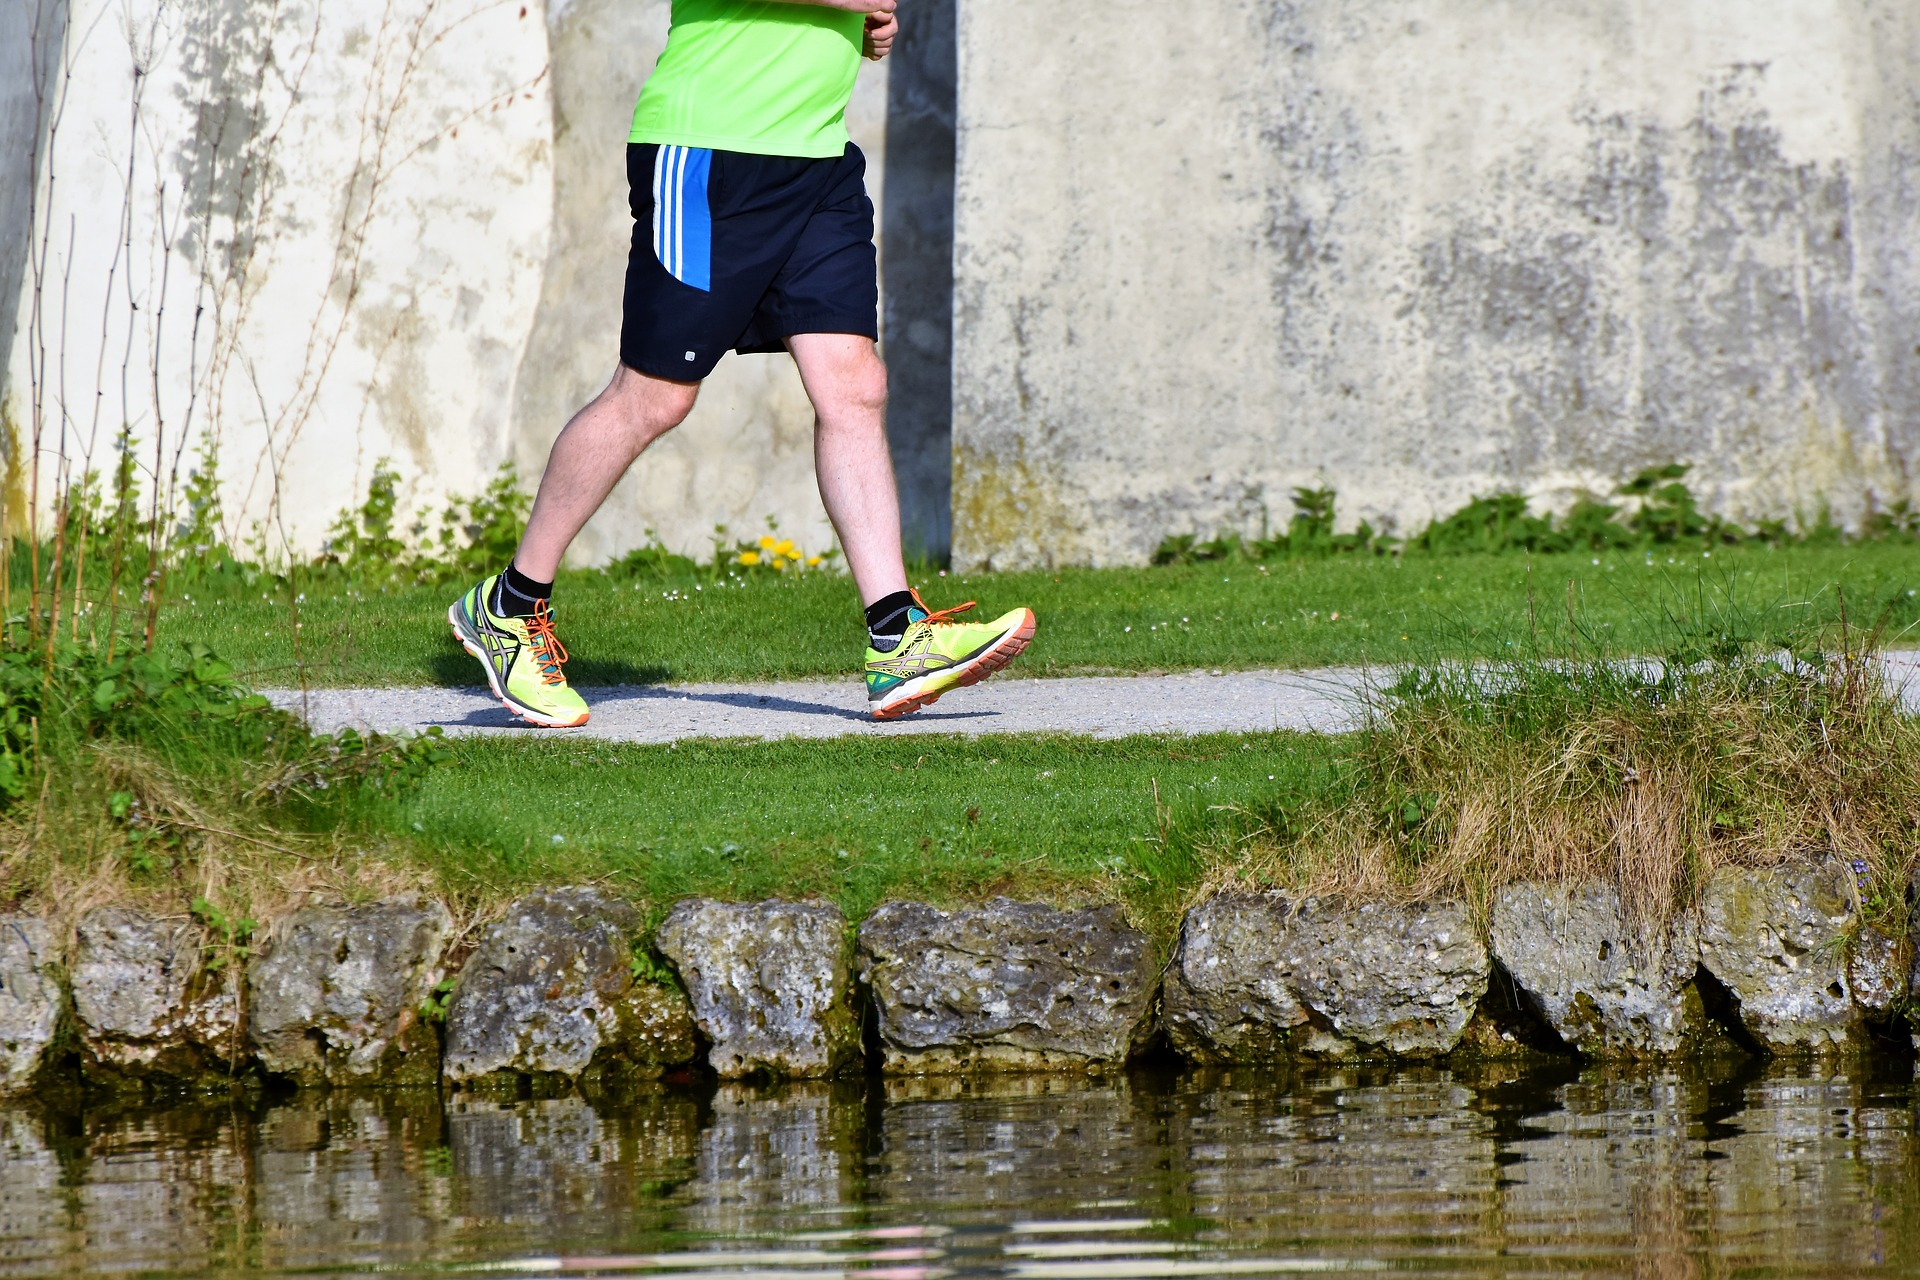 Control Your Weight - Walking for Health and Fitness